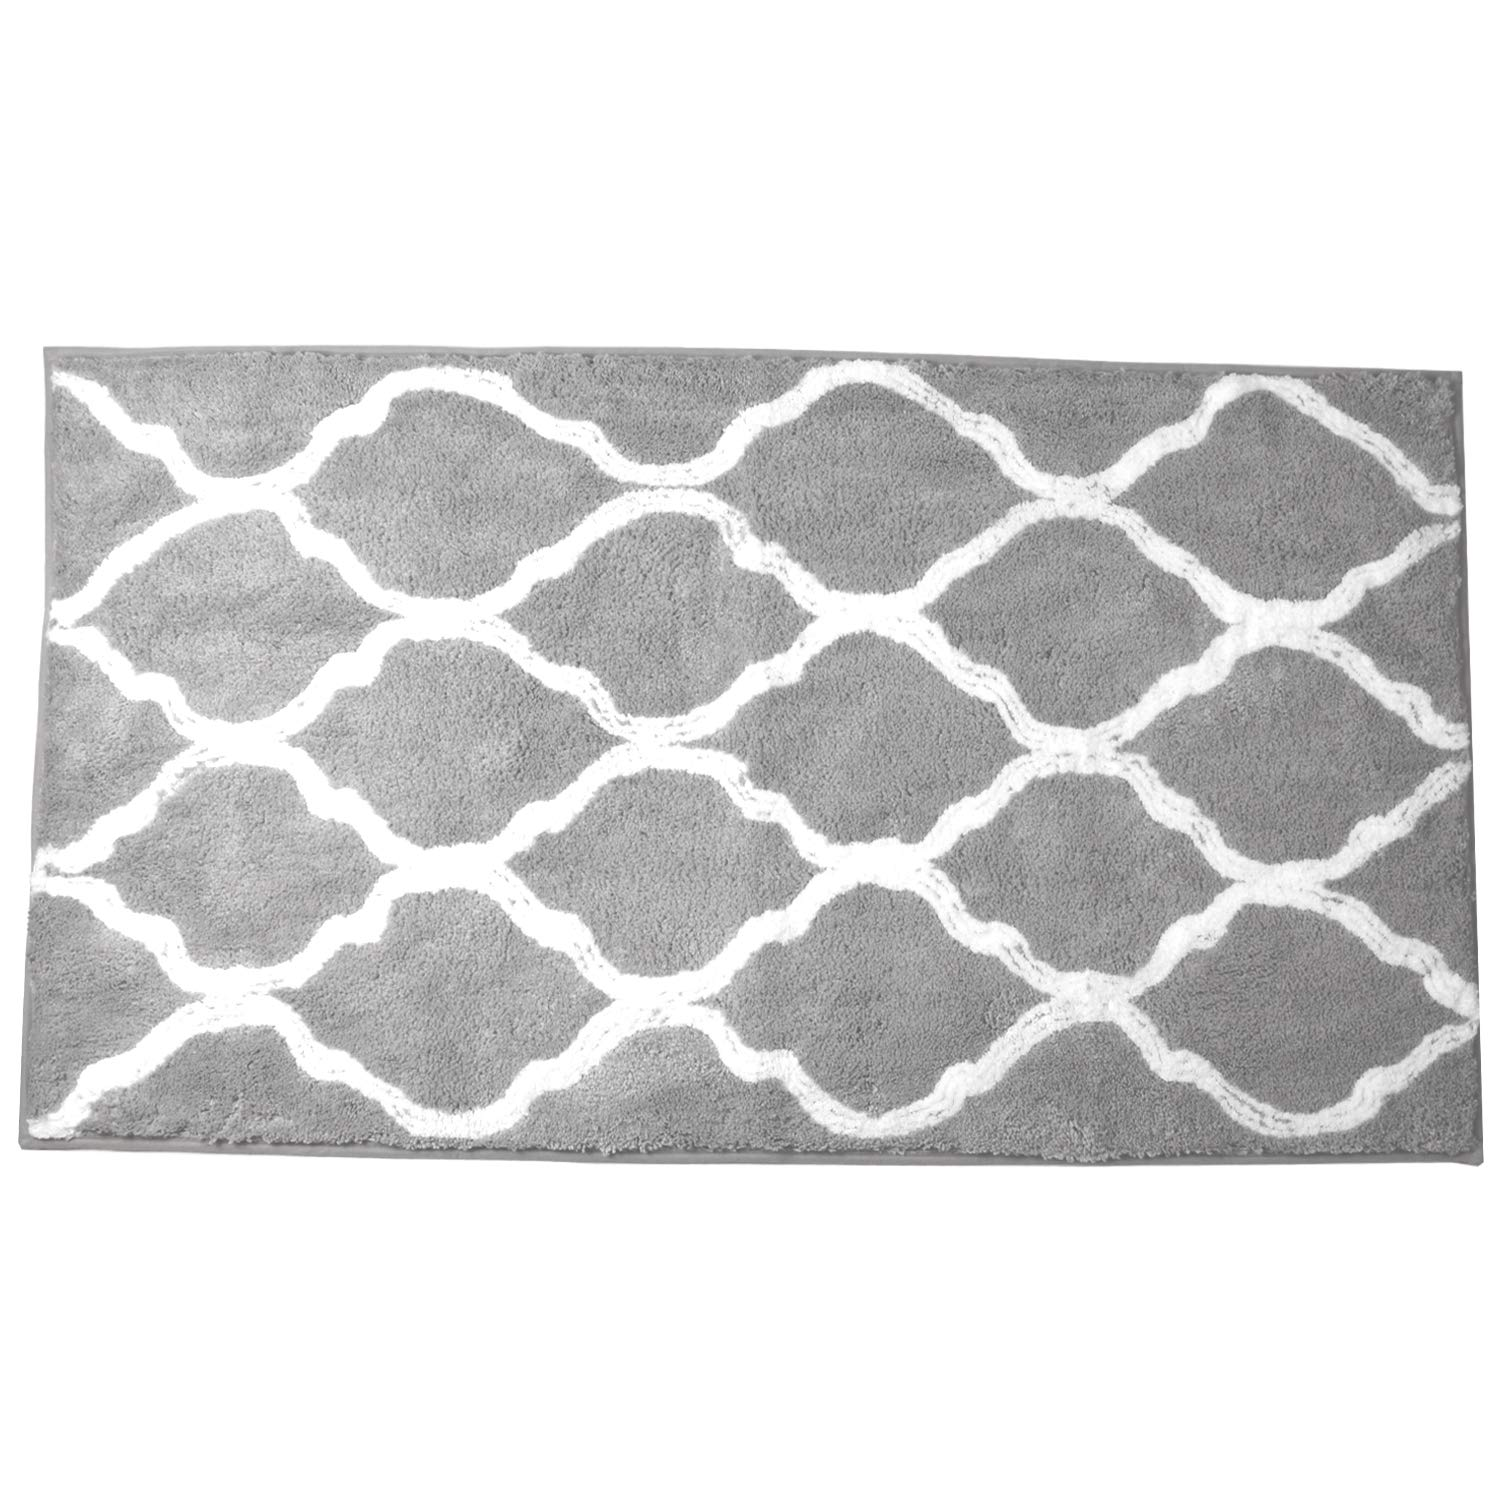 Pauwer Microfiber Bath Rugs for Bathroom Runner Mat Long Non Slip Bath Rug Runner Machine Washable Absorbent Bath Mat for Bathroom Floor Shower (47''×27.5'', Grey) by Pauwer